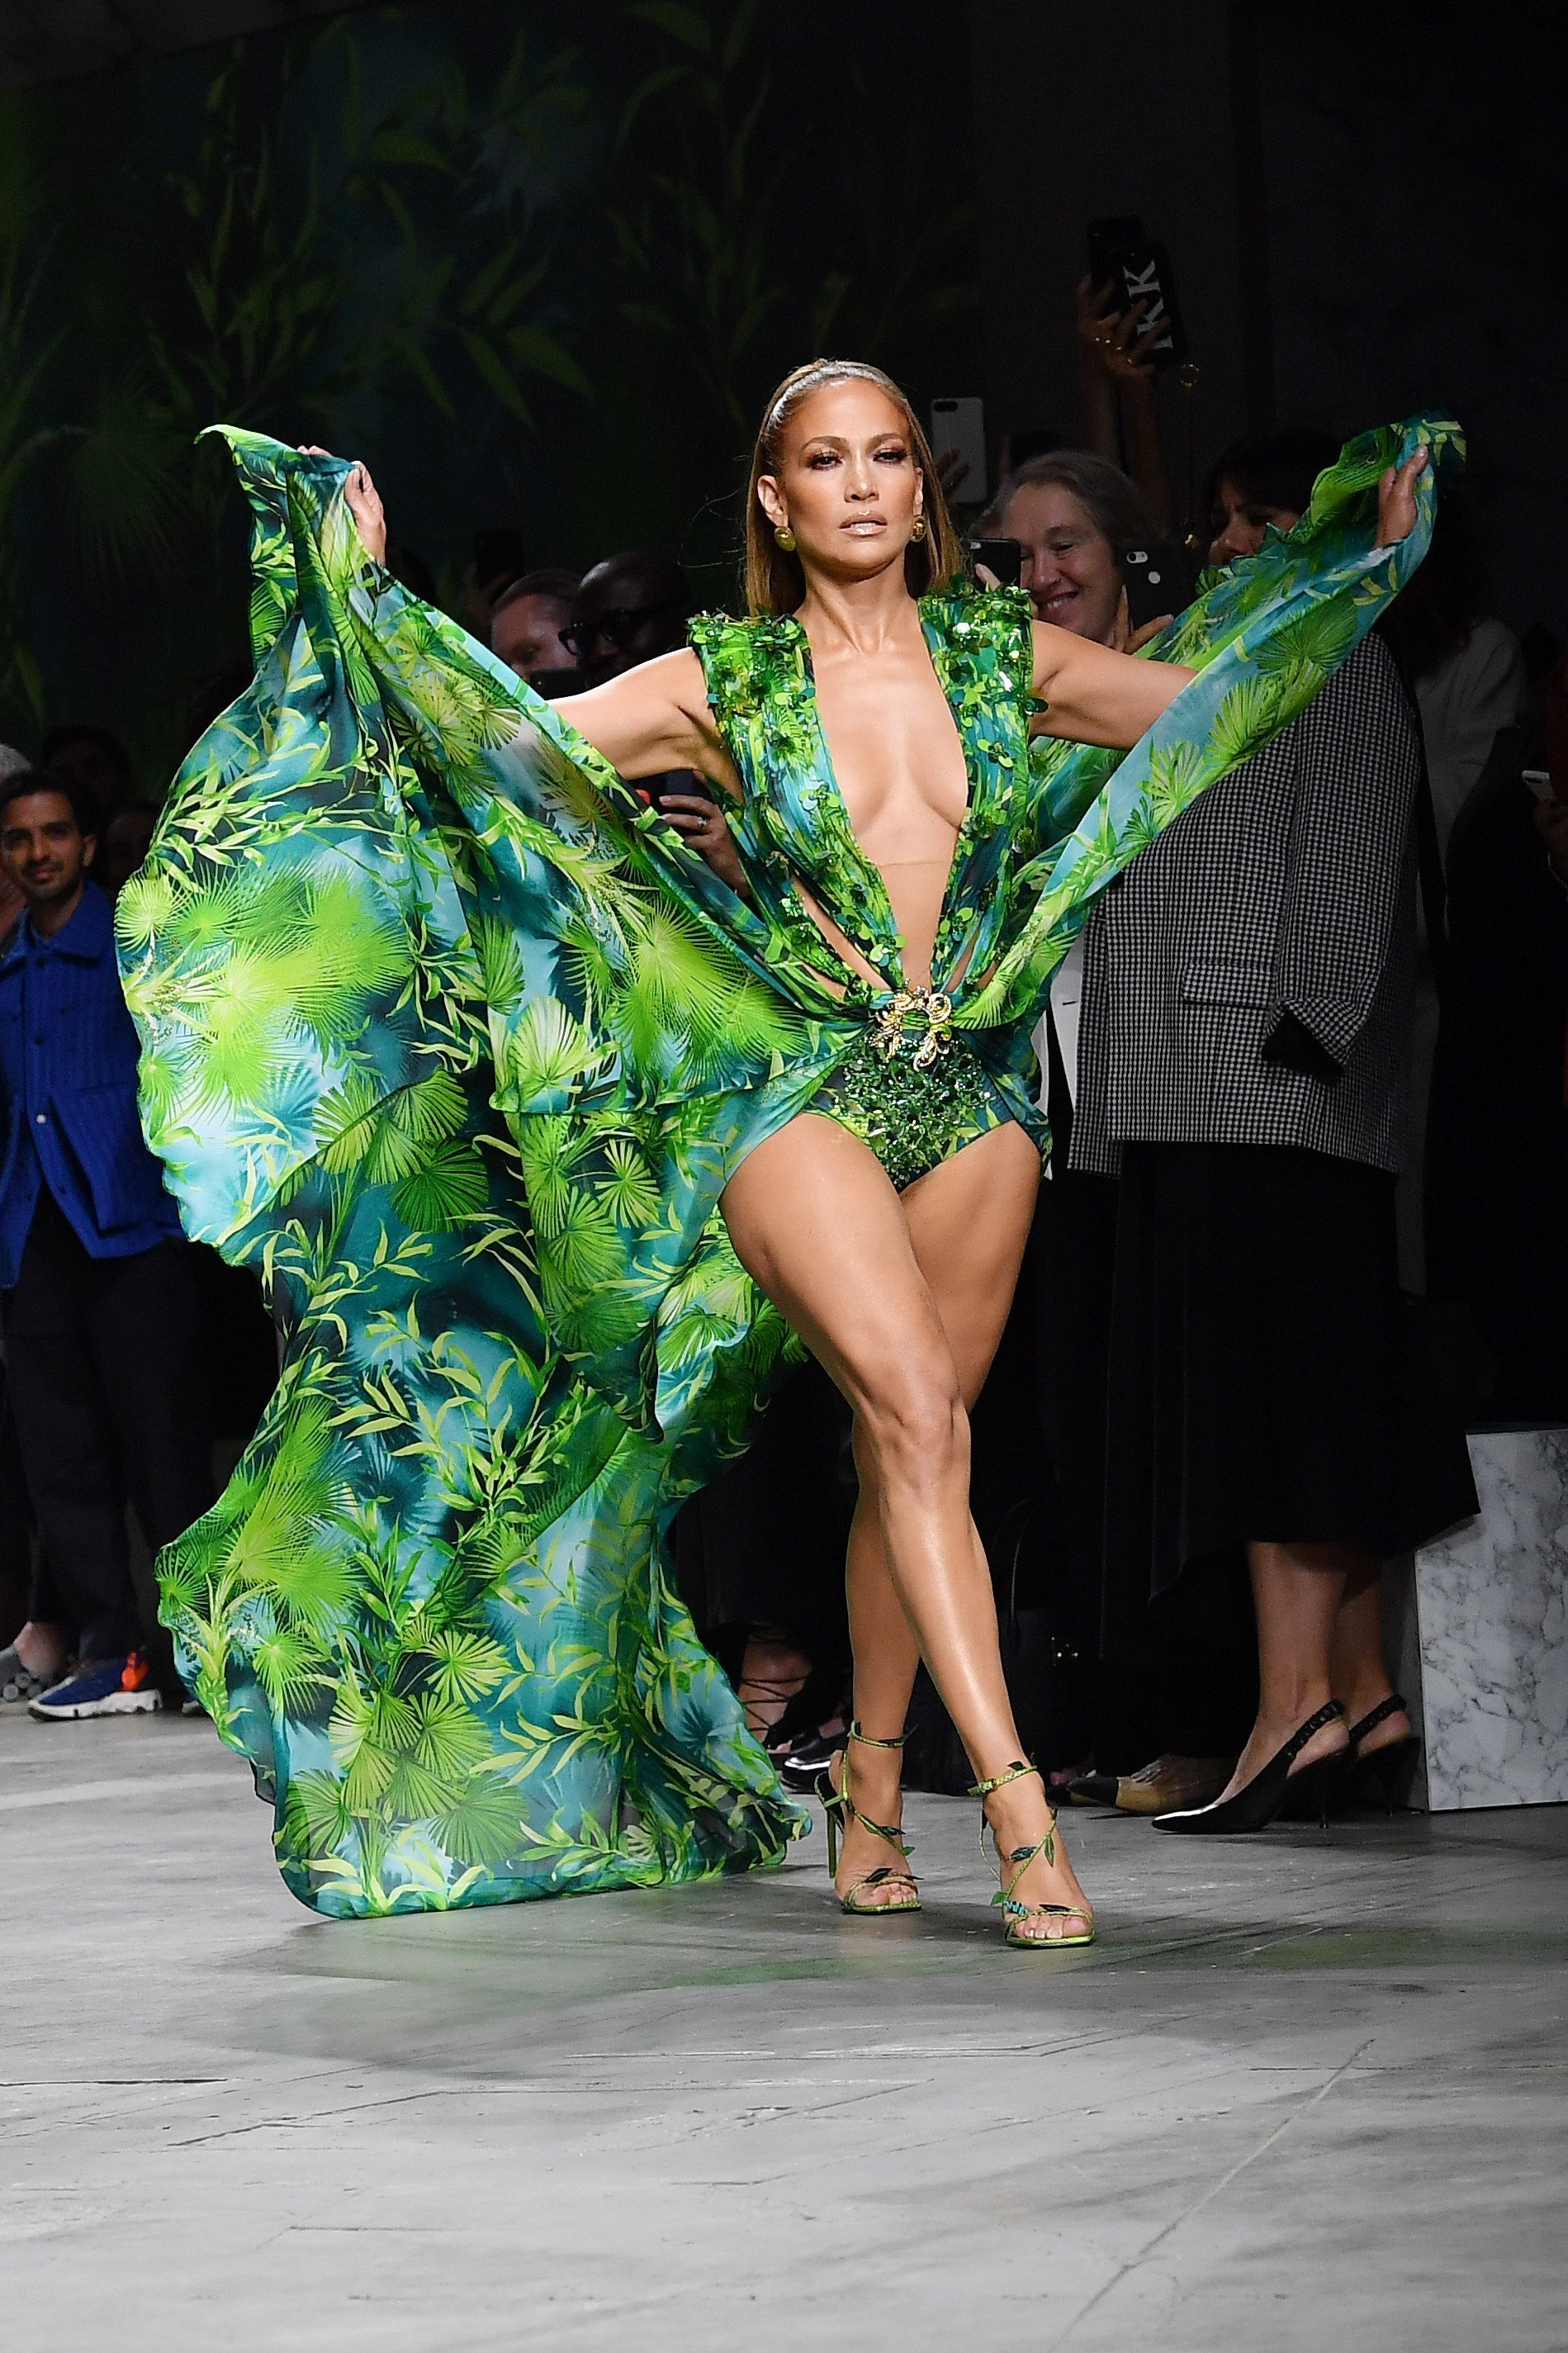 Jennifer Lopez walks the runway at Versace show in Milan, Italy on September 20, 2019 | Photo: Getty Images